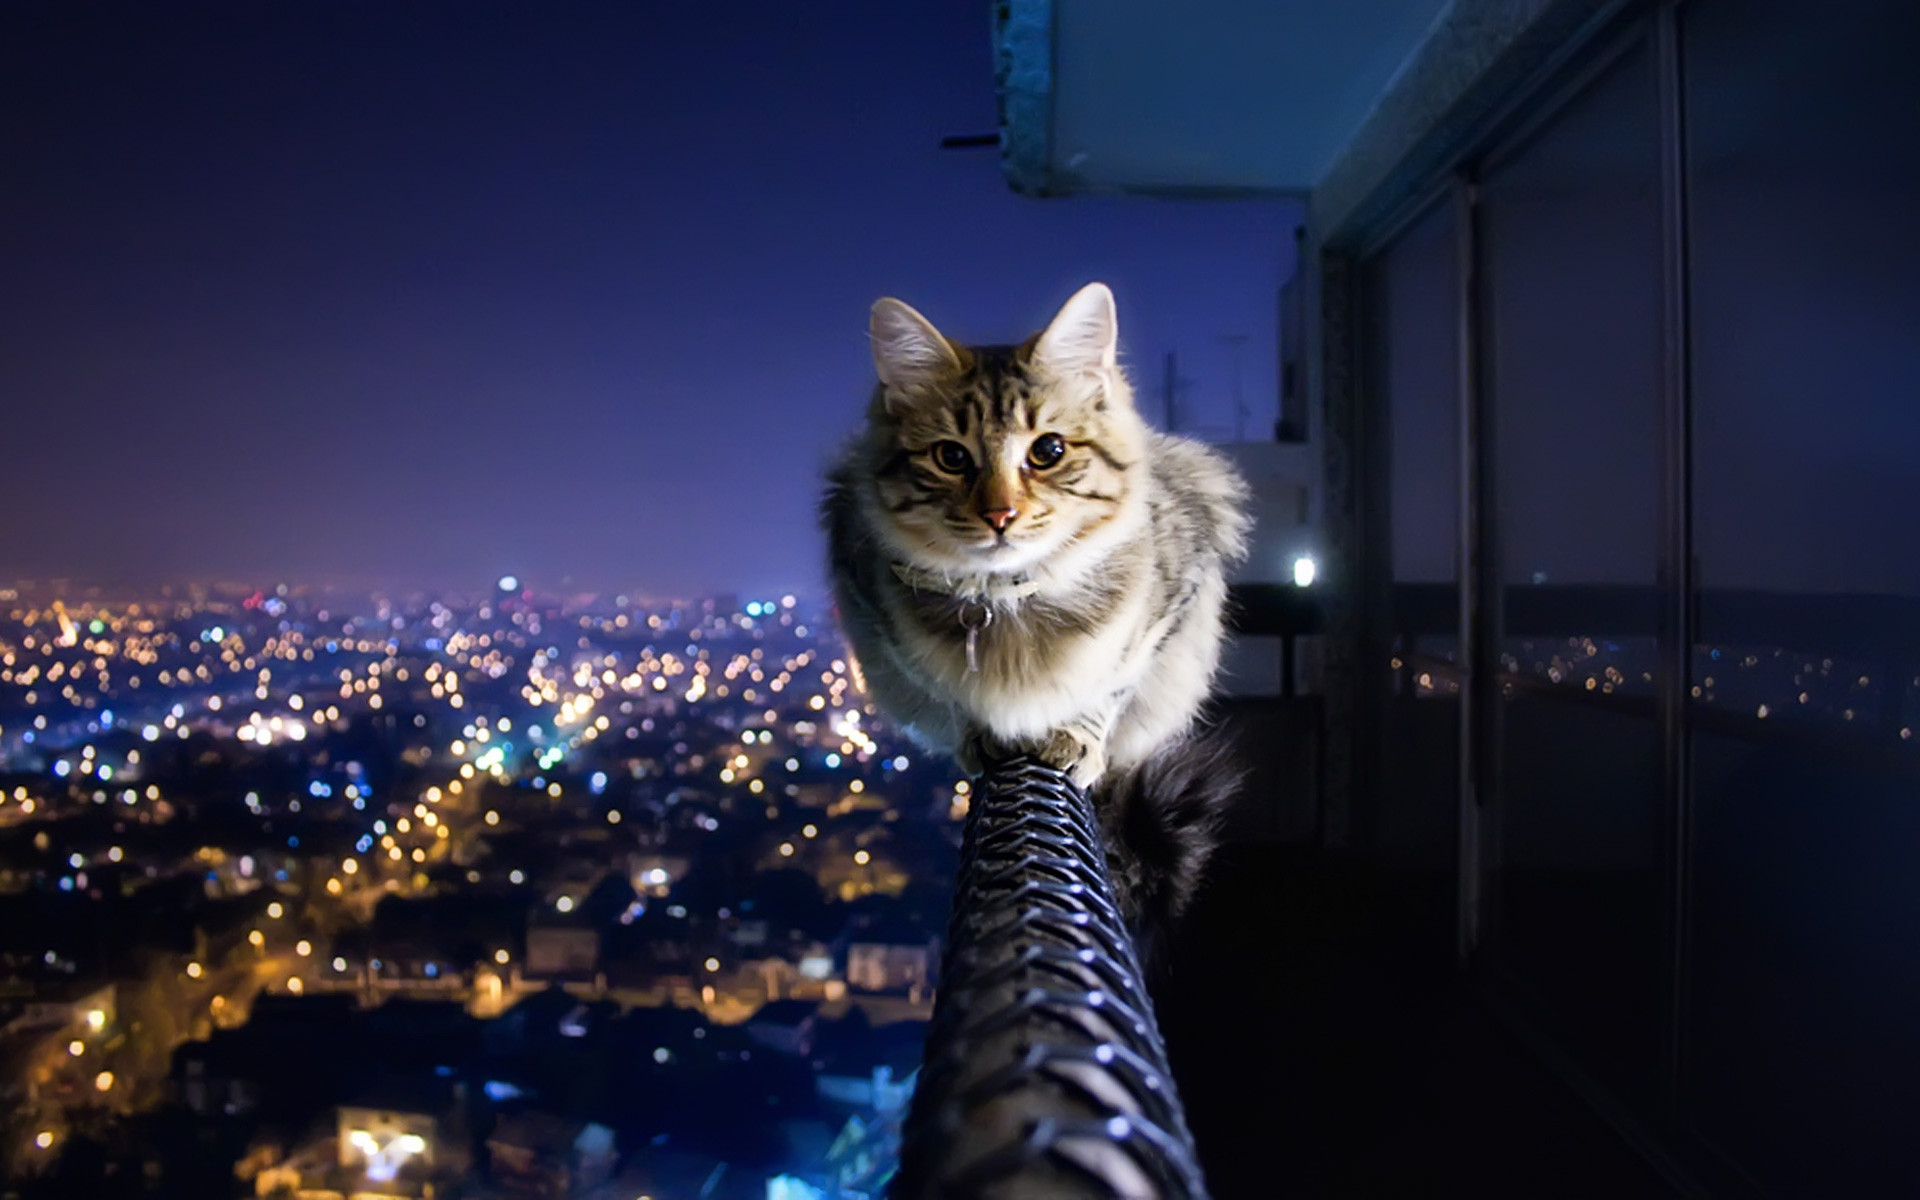 ... HD Cat Wallpapers 1920x1080 (69 images) ... 1920x1200